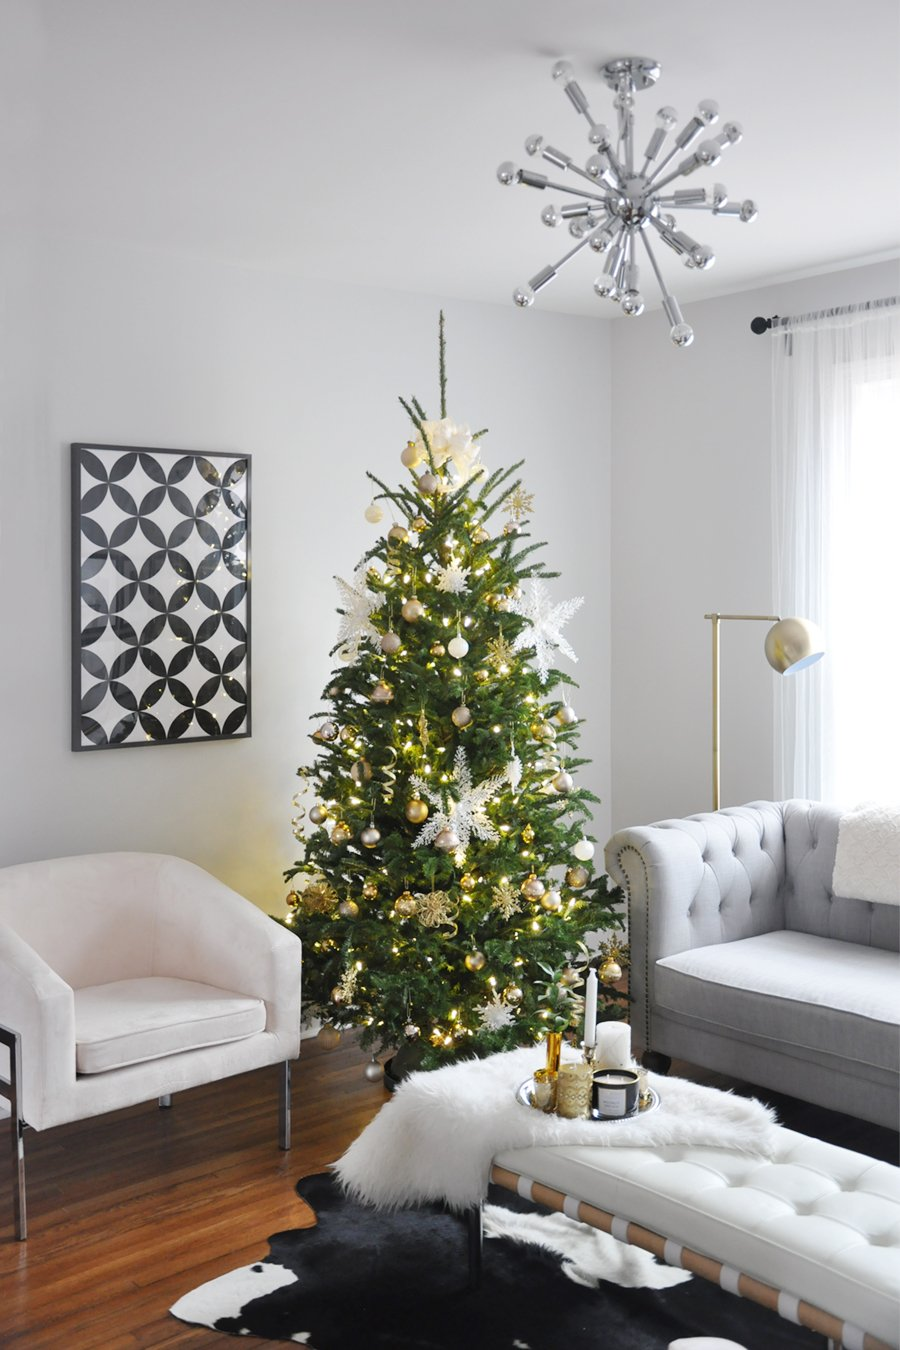 Holiday Home Decorating Ideas holiday home decorating ideas impressive decor images about masculine christmas decor on pinterest trees inexpensive holiday home decorating ideas unique Foxy Oxie 2016 Winter Home Tour